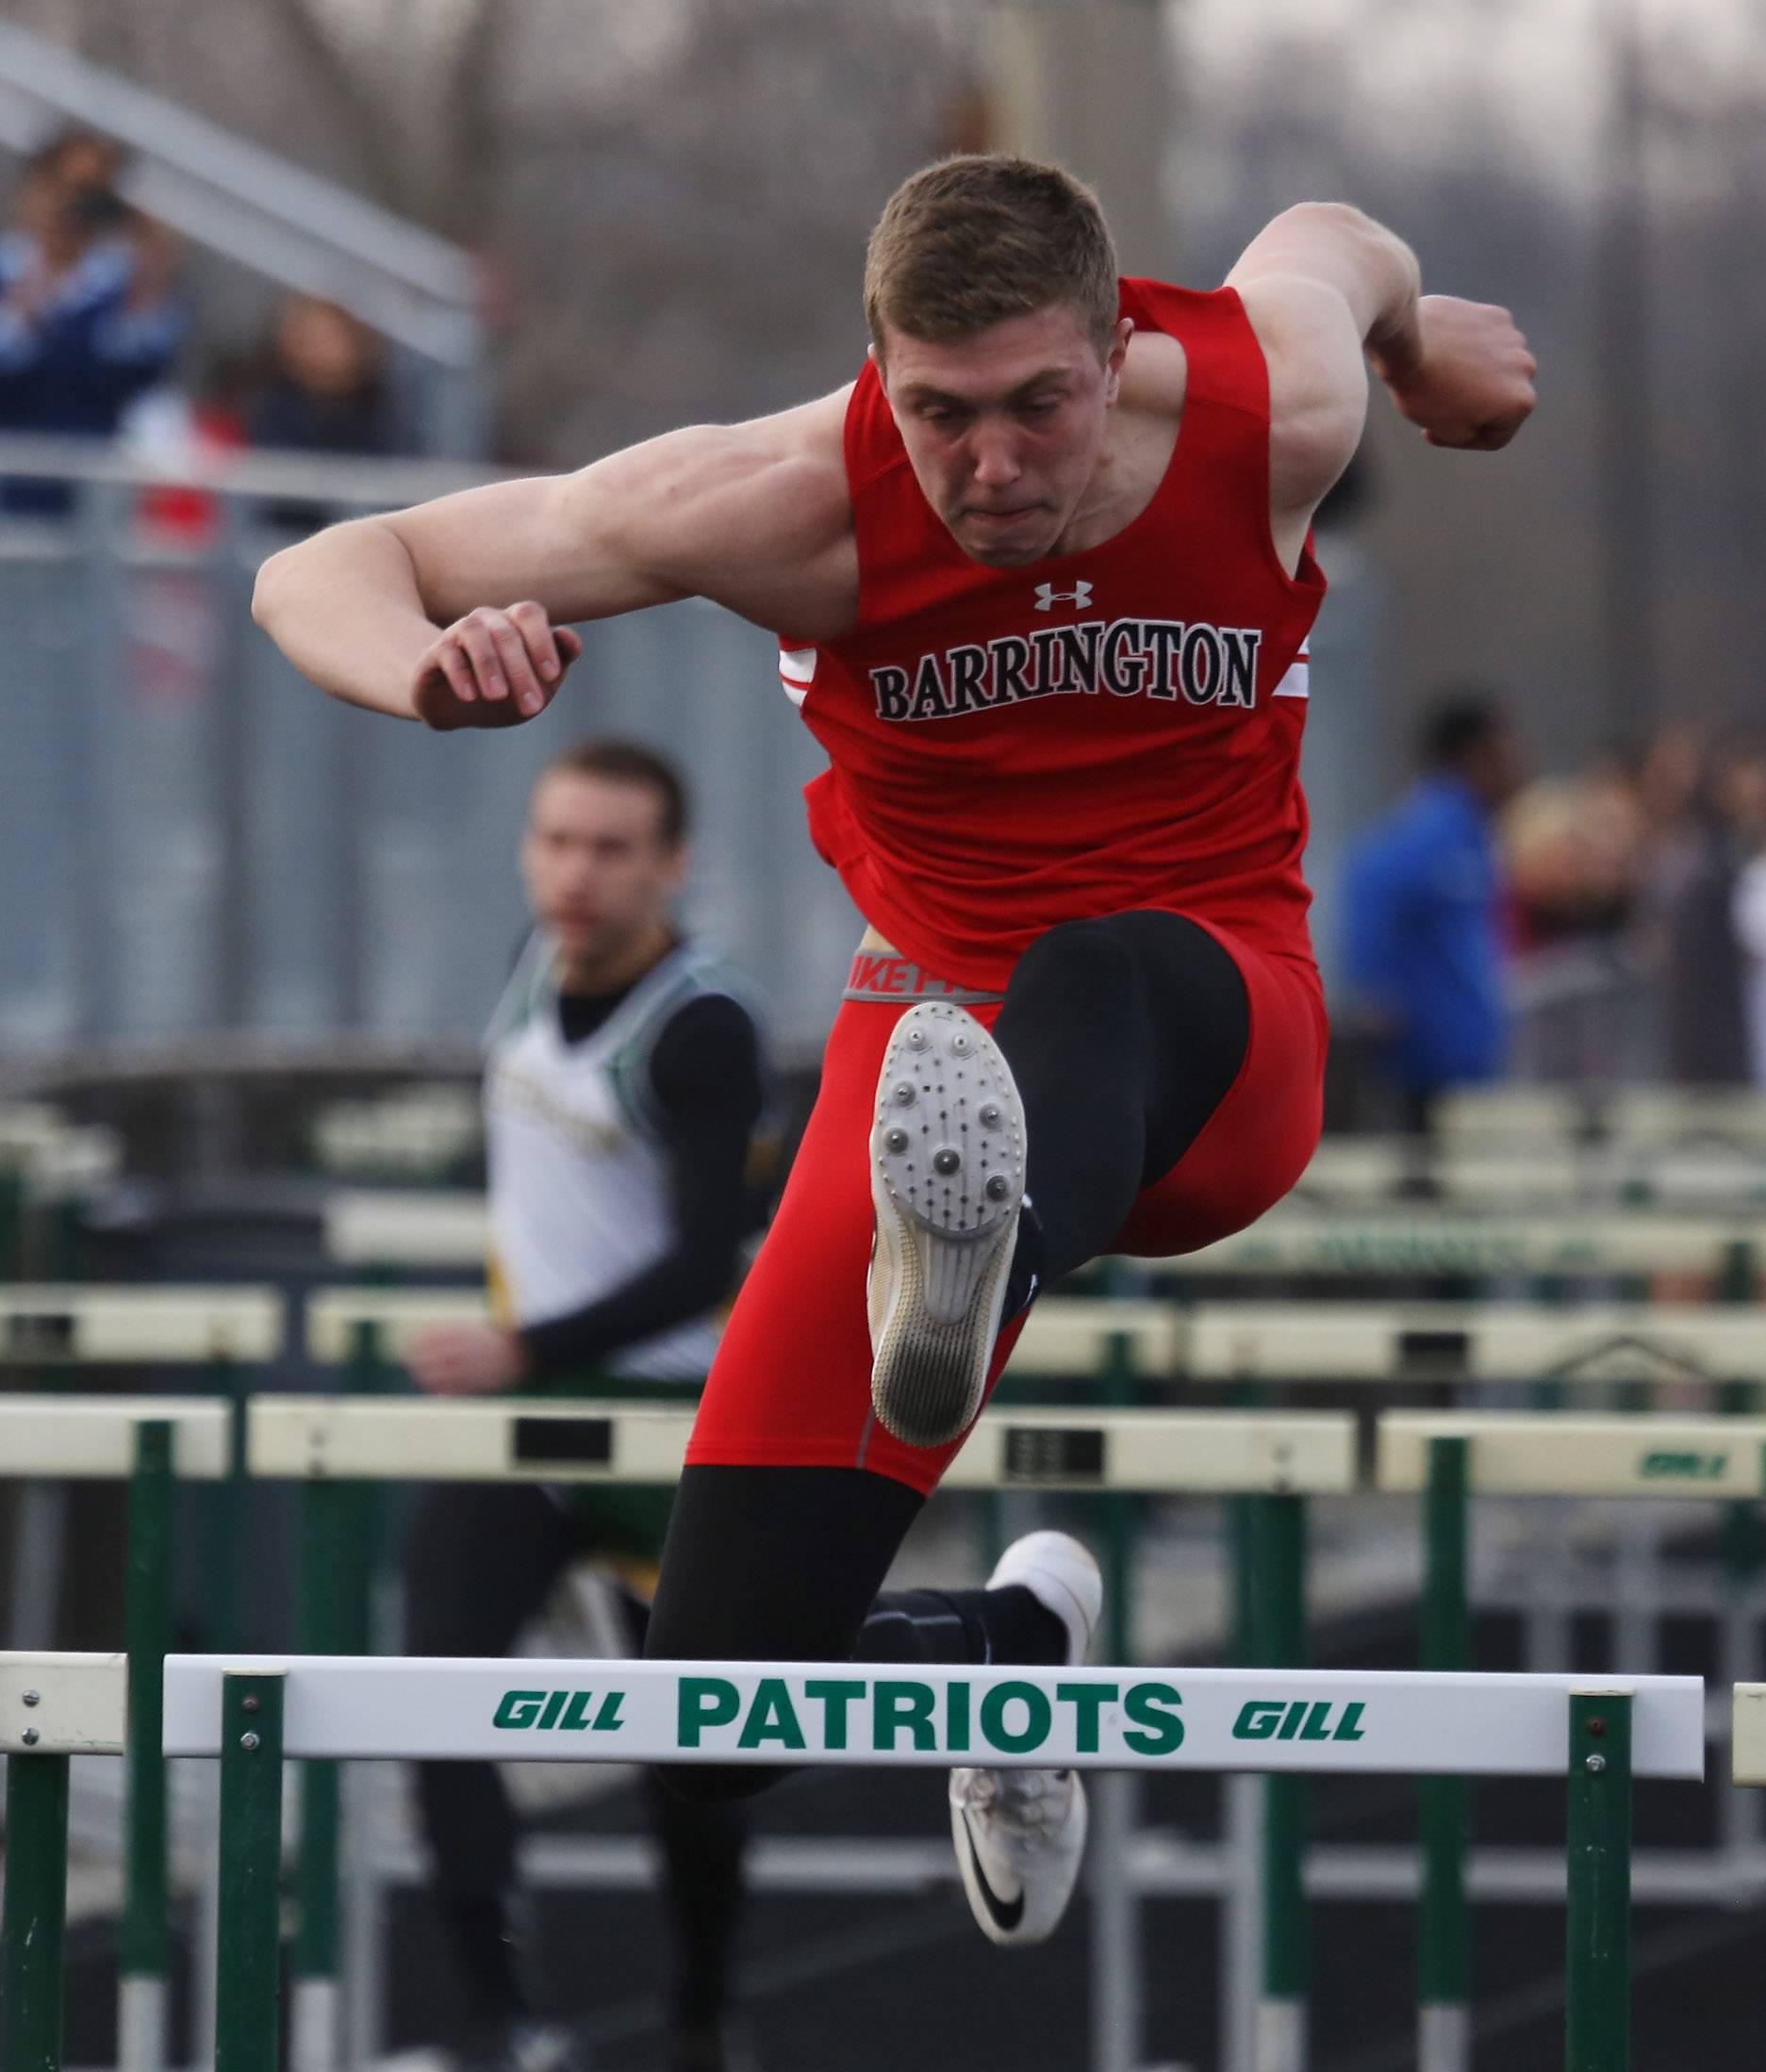 Barrington hurdler Parker Deloye competes in the high hurdles relay during the 43rd Annual Patriot Relays Thursday at Stevenson.